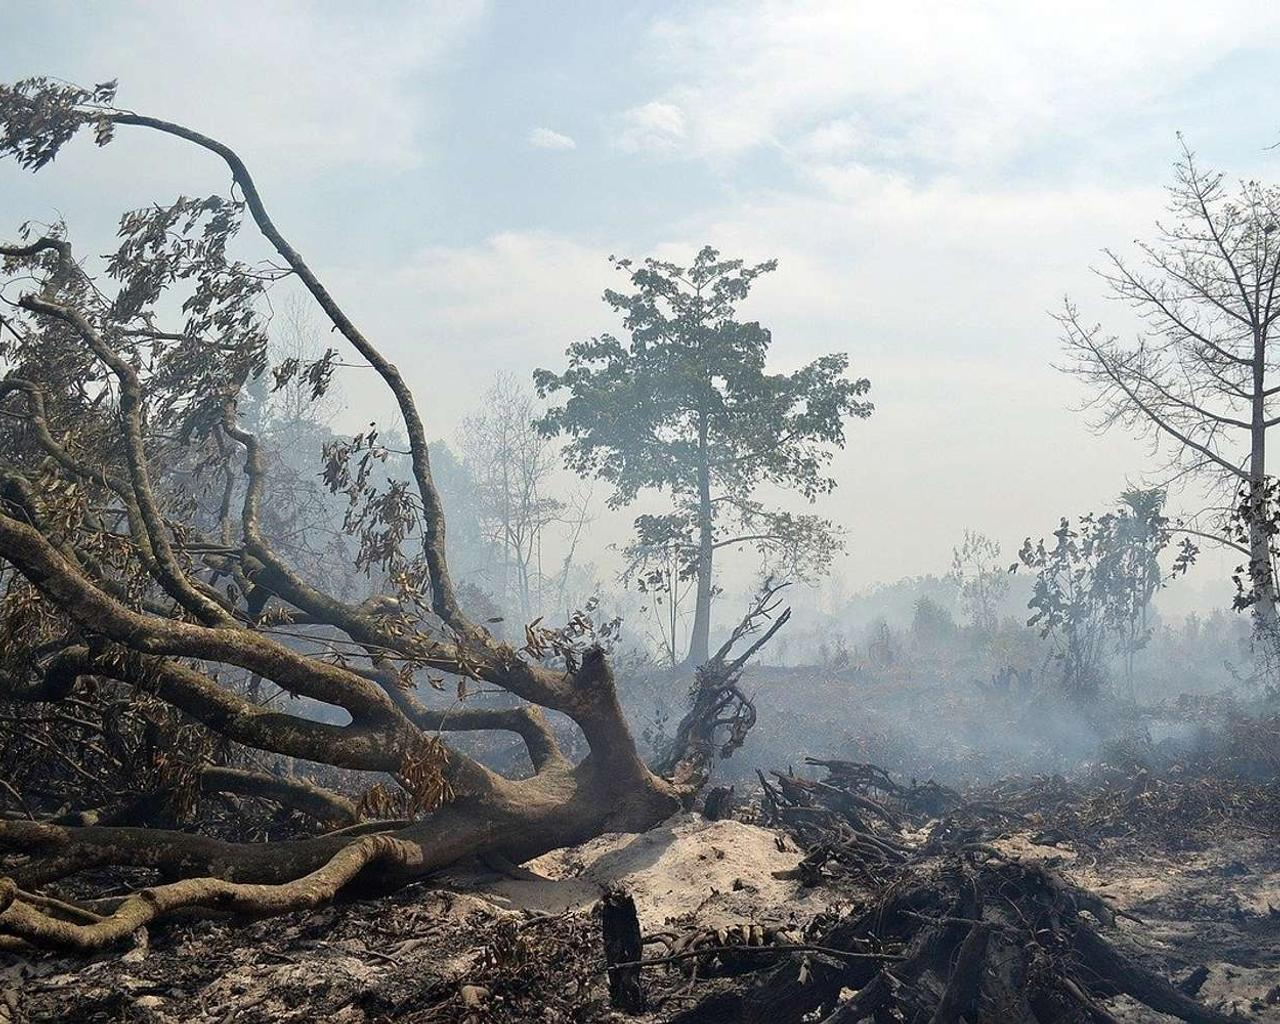 California Governor Asks Major Disaster Declaration Amid Wildfires — Could They Be Prevented?